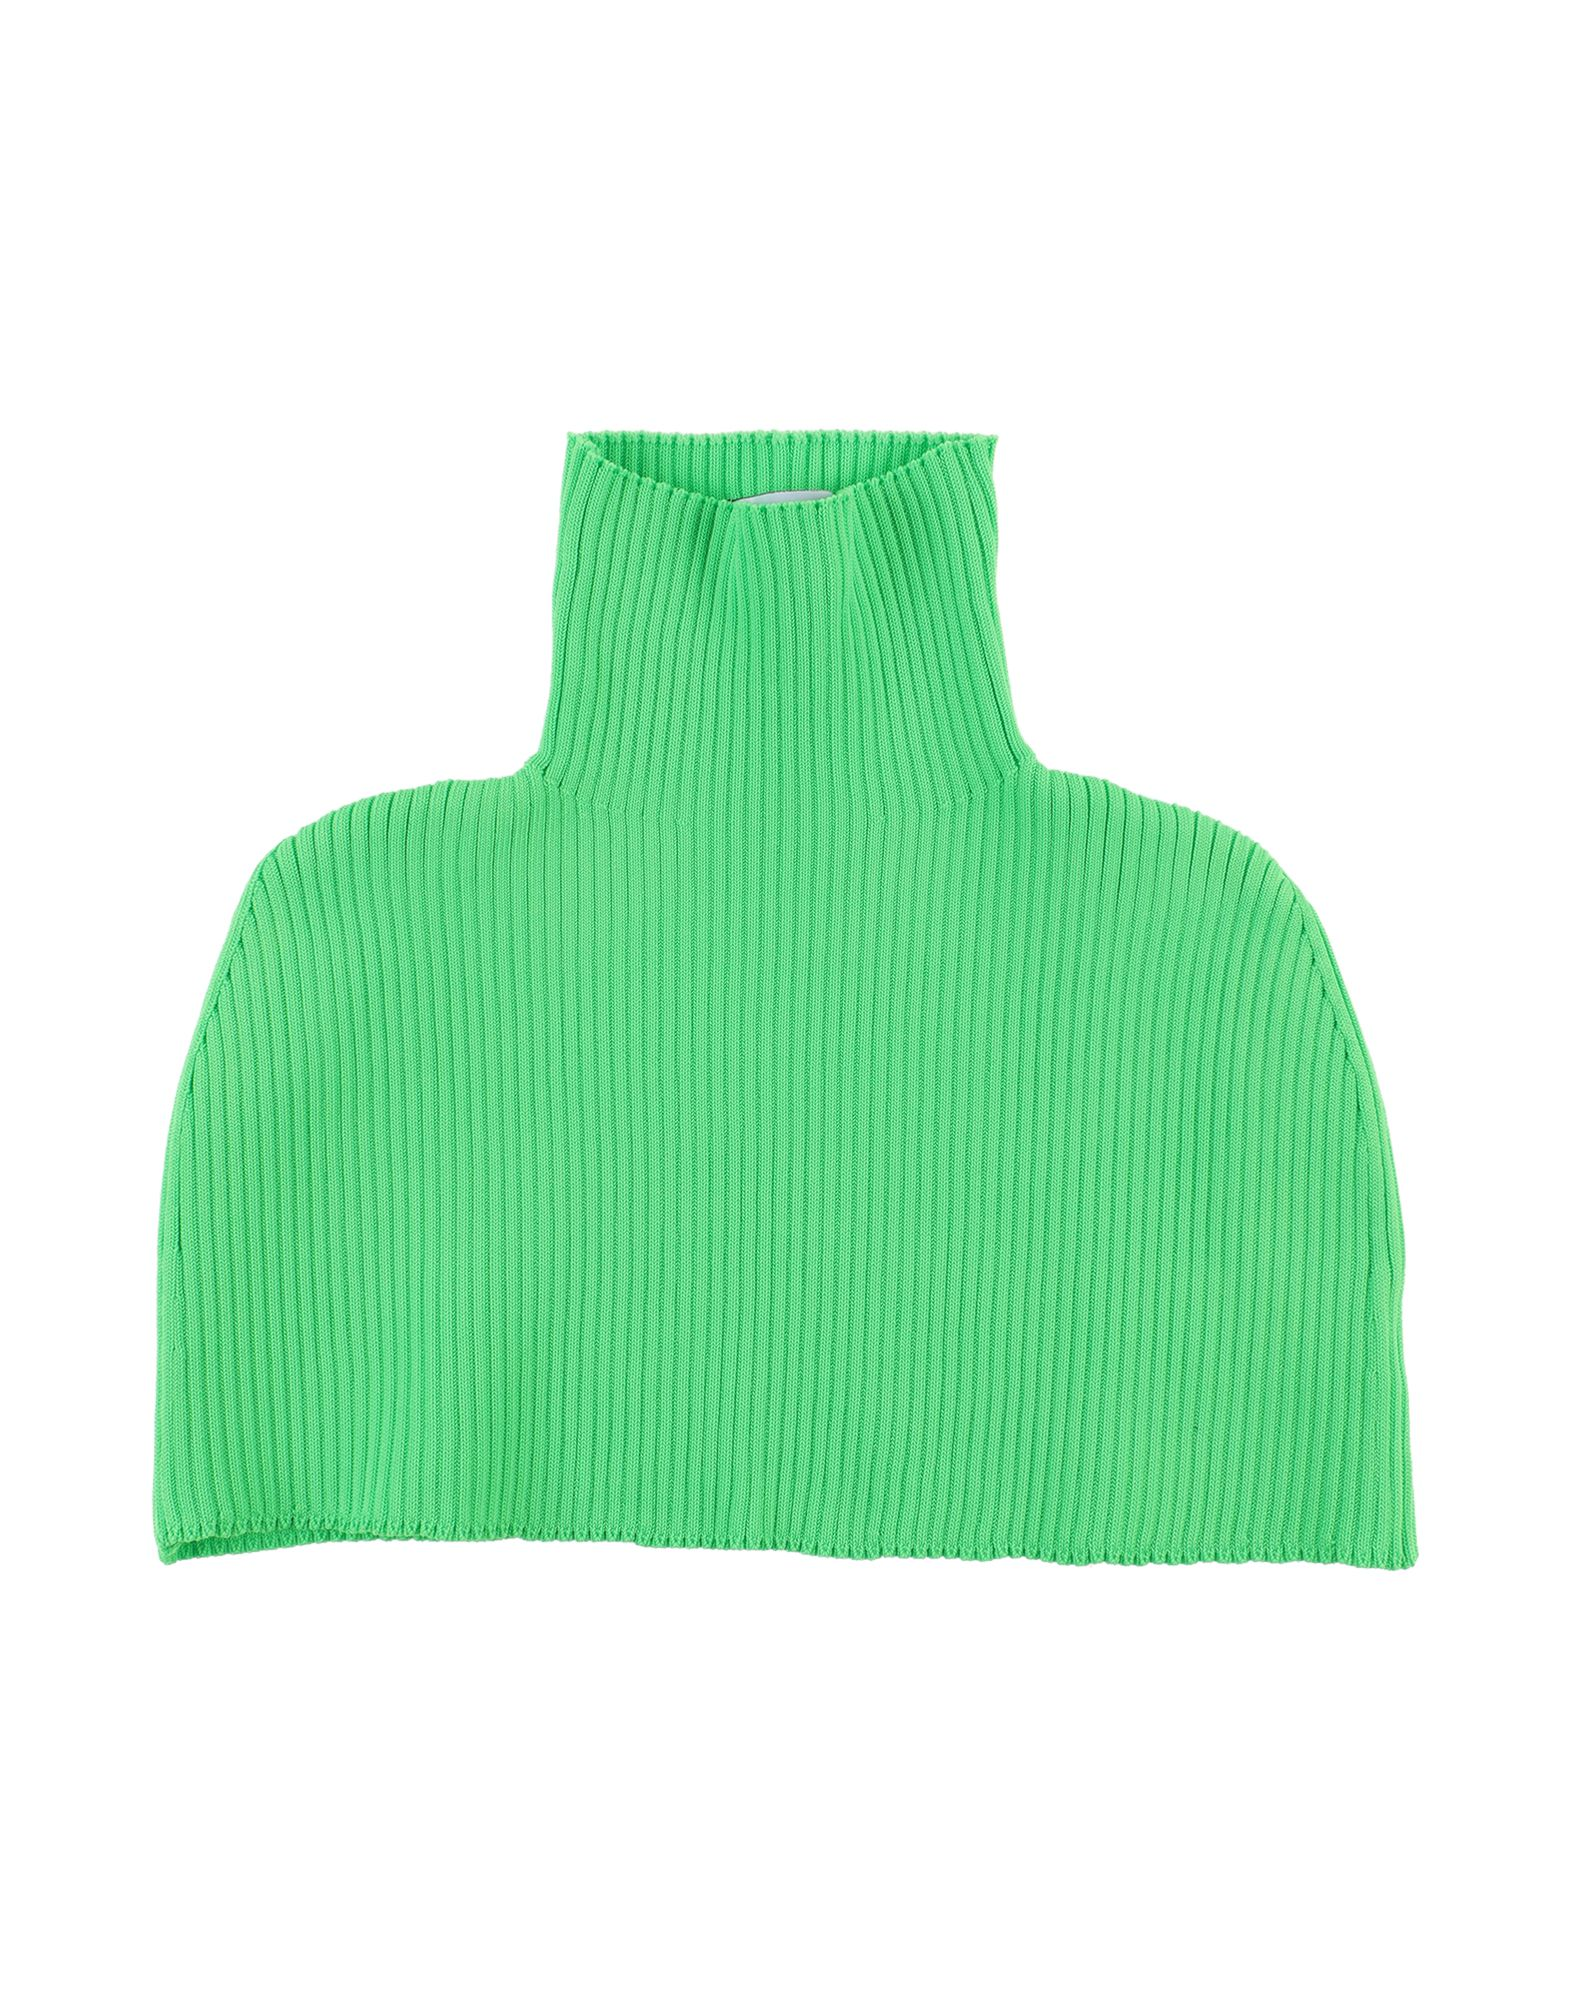 GCDS Collars. knitted, ribbed, no appliqués, basic solid color, lightweight sweater. 94% Polyester, 6% Elastane